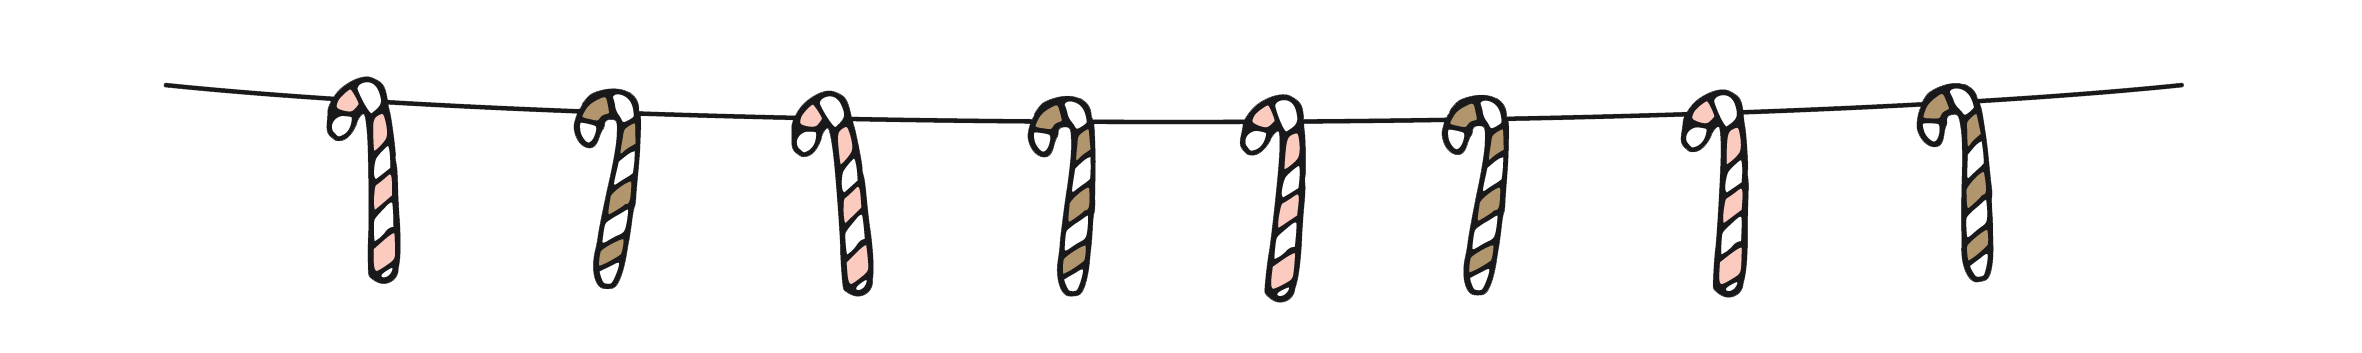 candy-canes.png